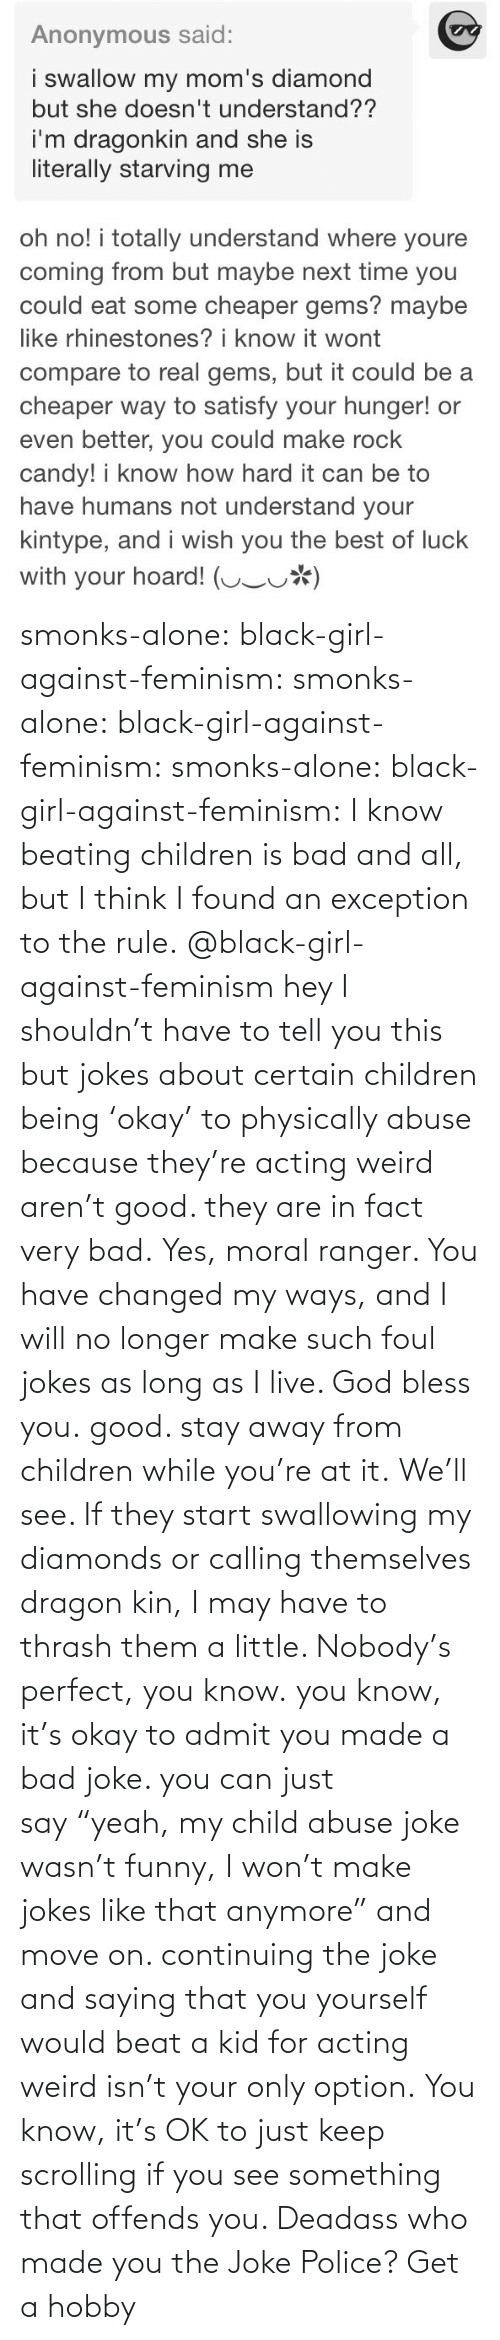 "Themselves: smonks-alone:  black-girl-against-feminism: smonks-alone:  black-girl-against-feminism:  smonks-alone:  black-girl-against-feminism: I know beating children is bad and all, but I think I found an exception to the rule. @black-girl-against-feminism hey I shouldn't have to tell you this but jokes about certain children being 'okay' to physically abuse because they're acting weird aren't good. they are in fact very bad.  Yes, moral ranger. You have changed my ways, and I will no longer make such foul jokes as long as I live. God bless you.  good. stay away from children while you're at it.  We'll see. If they start swallowing my diamonds or calling themselves dragon kin, I may have to thrash them a little. Nobody's perfect, you know.  you know, it's okay to admit you made a bad joke. you can just say ""yeah, my child abuse joke wasn't funny, I won't make jokes like that anymore"" and move on. continuing the joke and saying that you yourself would beat a kid for acting weird isn't your only option.   You know, it's OK to just keep scrolling if you see something that offends you. Deadass who made you the Joke Police? Get a hobby"